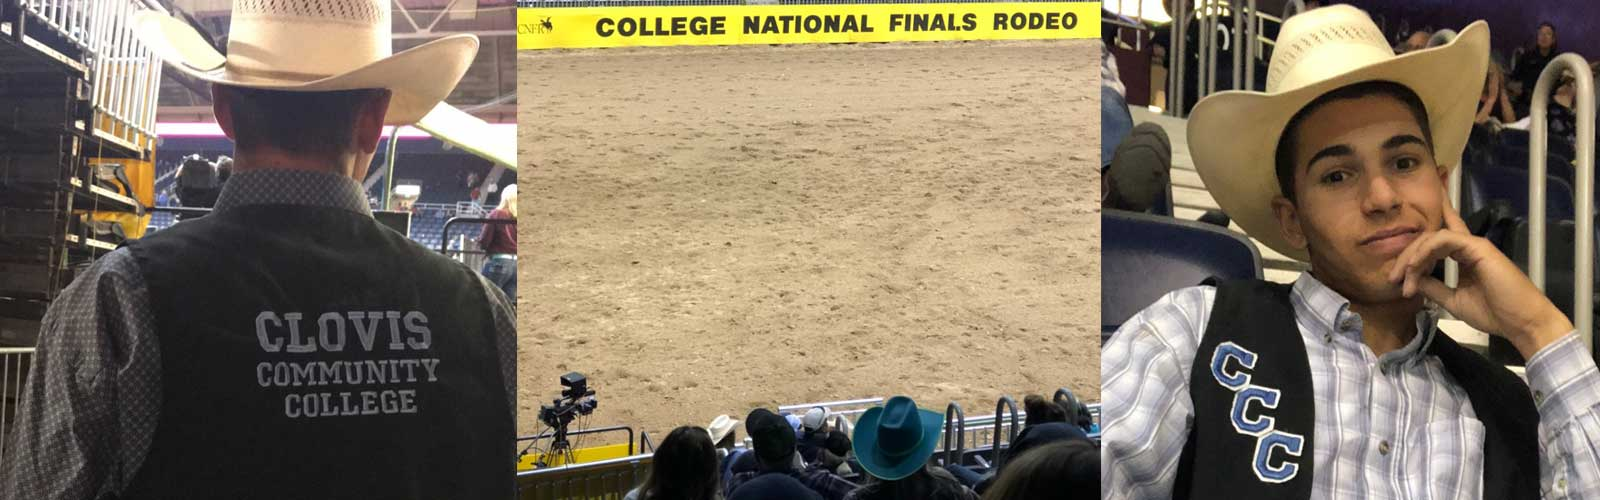 Wyatt Adams at National Finals Rodeo